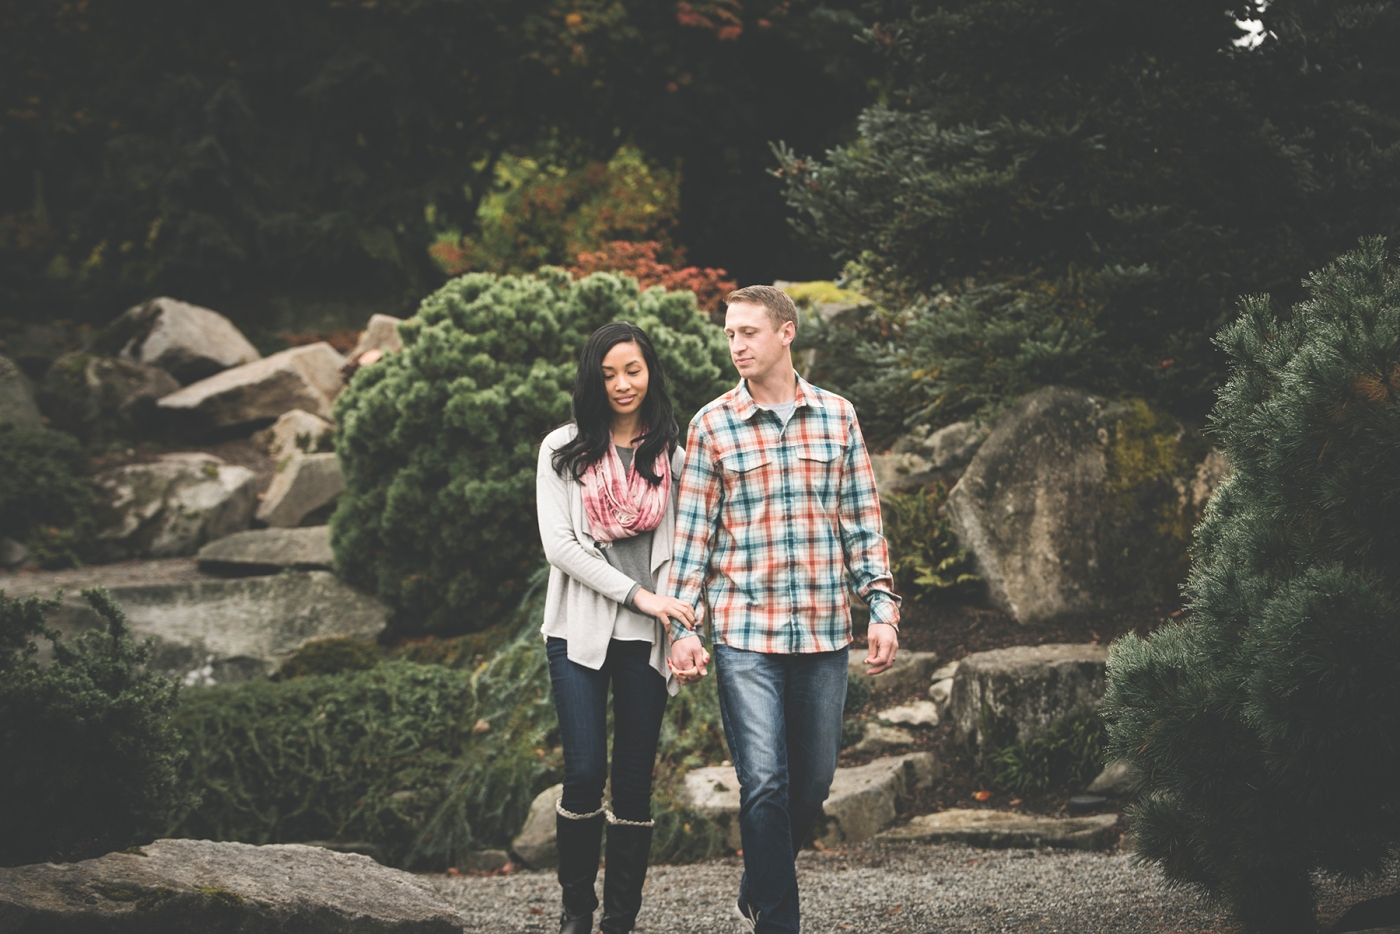 jane-speleers-photography-ju-bri-holiday-october-bellevue-botanical-garden-engagement-2016_dsc_5629